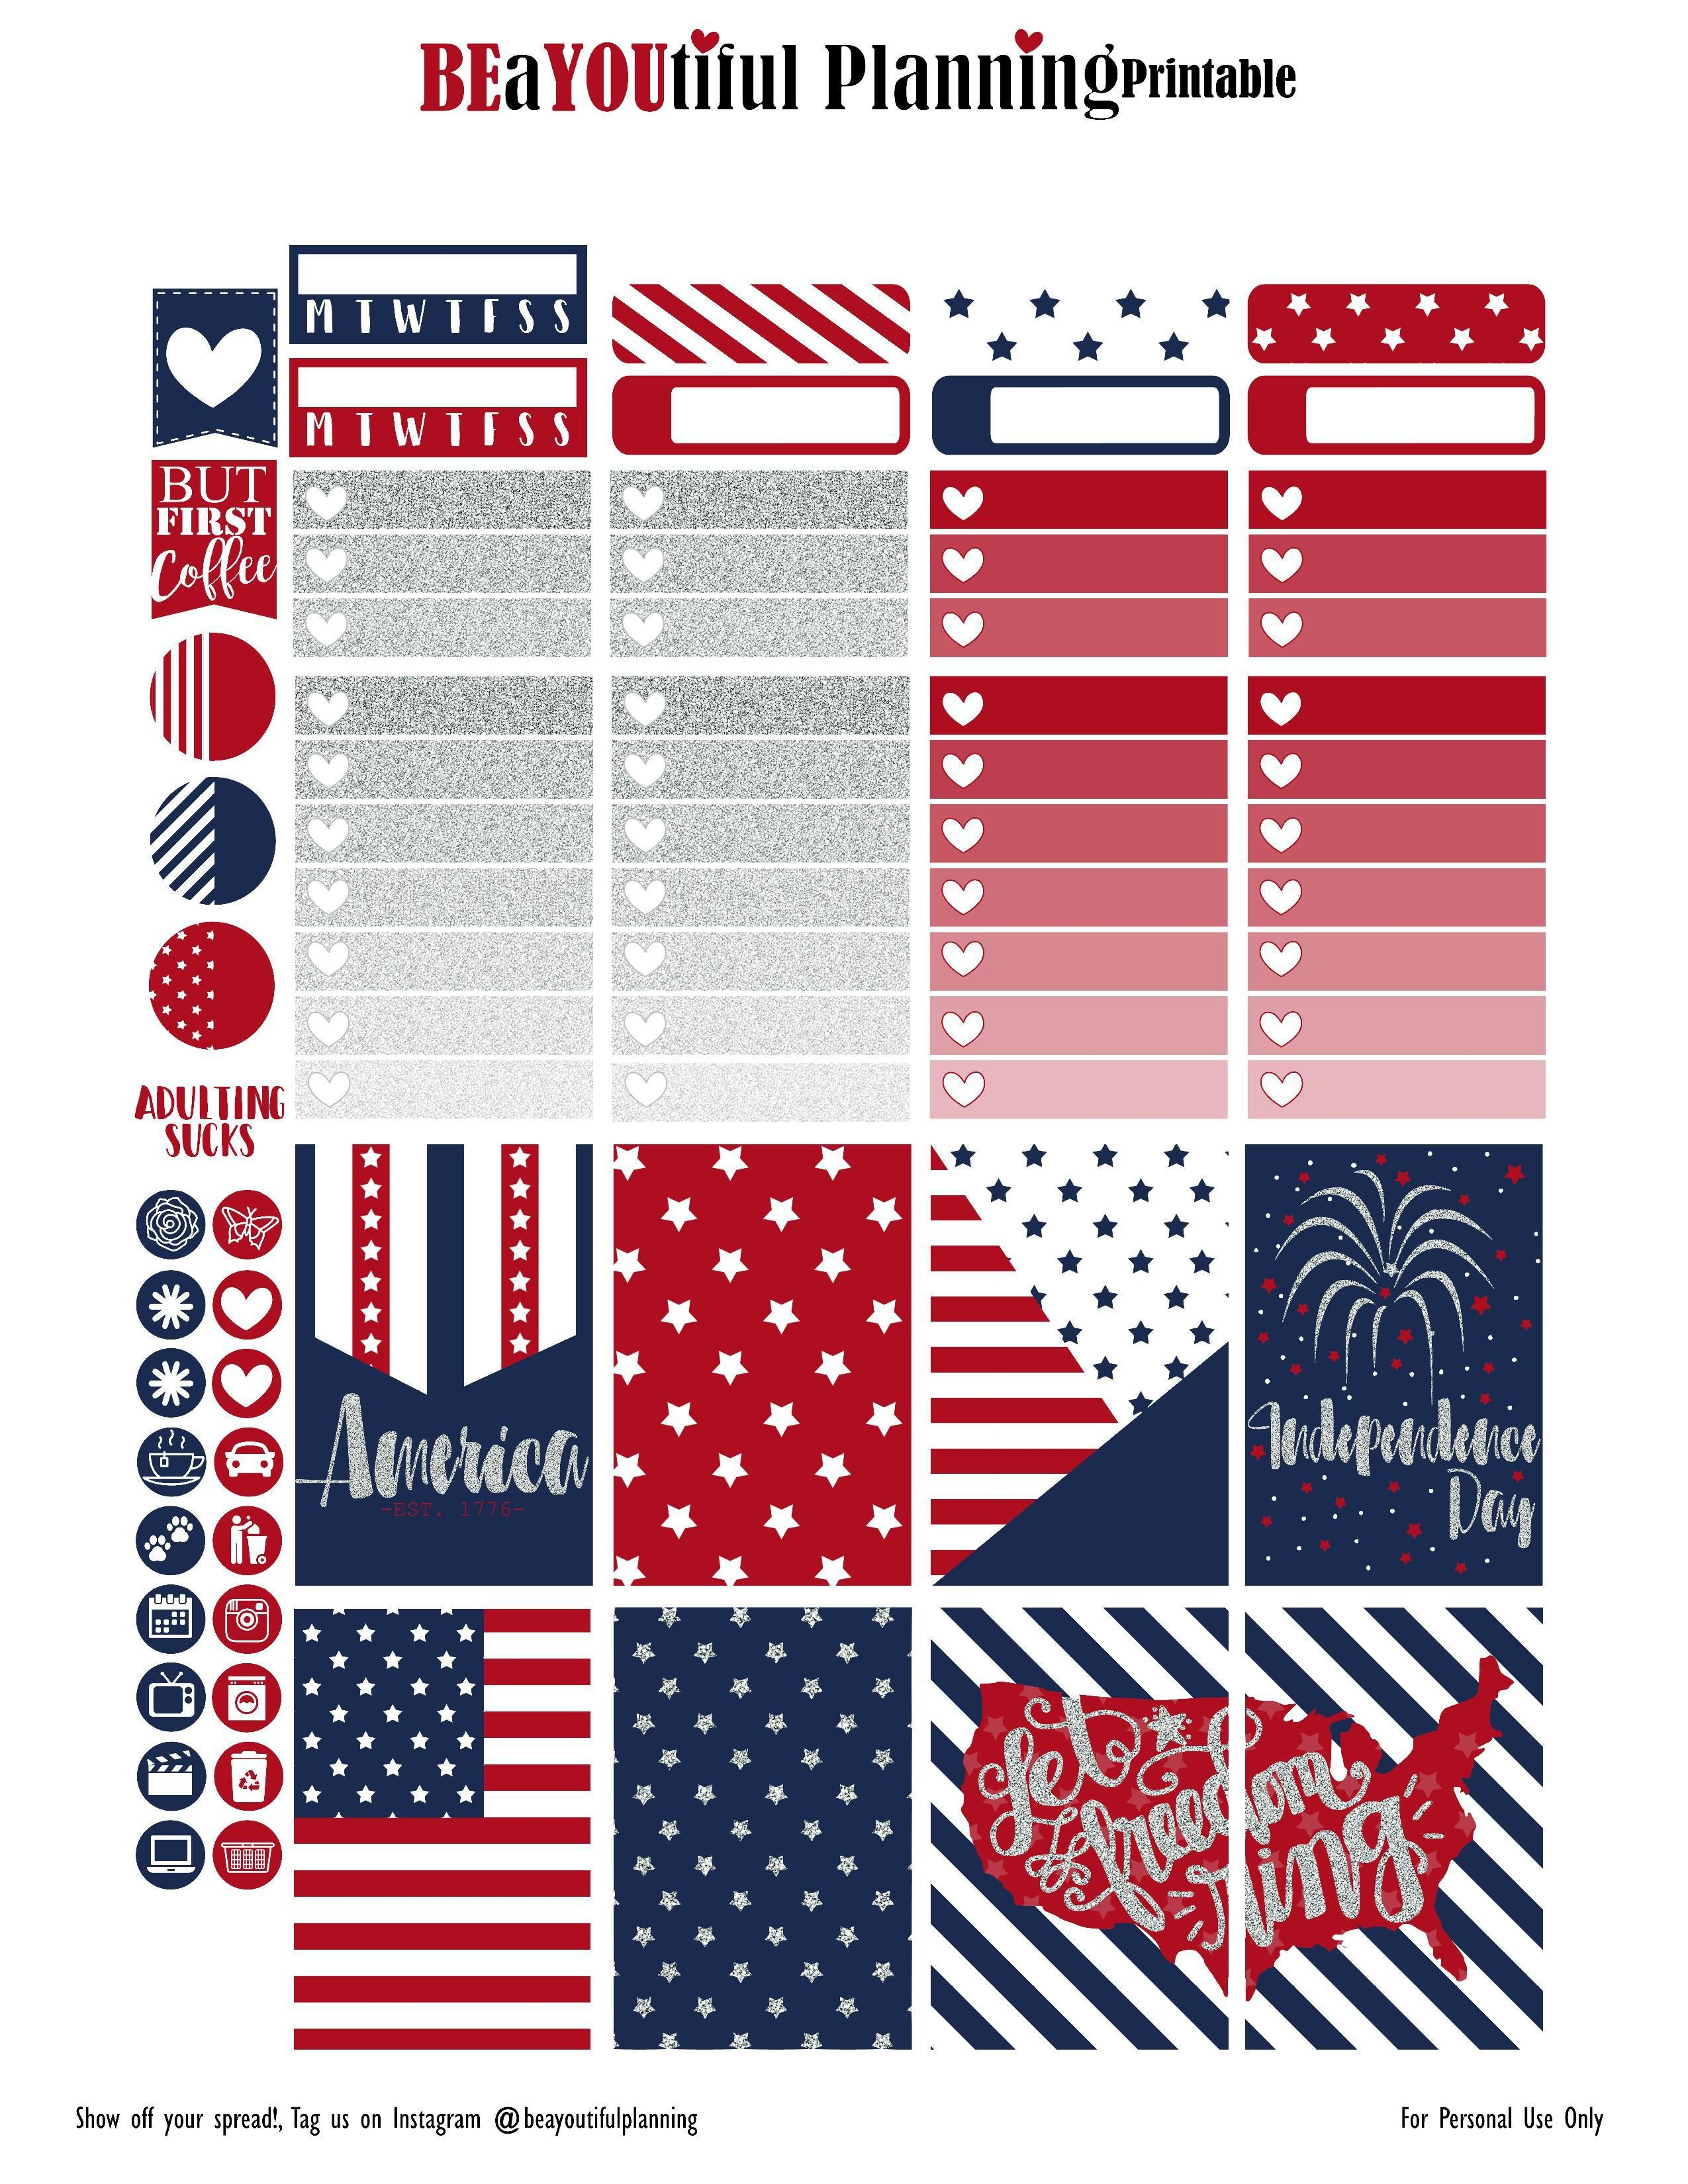 Free 4Th Of July Planner Stickersbeayoutifulplanning | Happy - Free Printable 4Th Of July Stationery